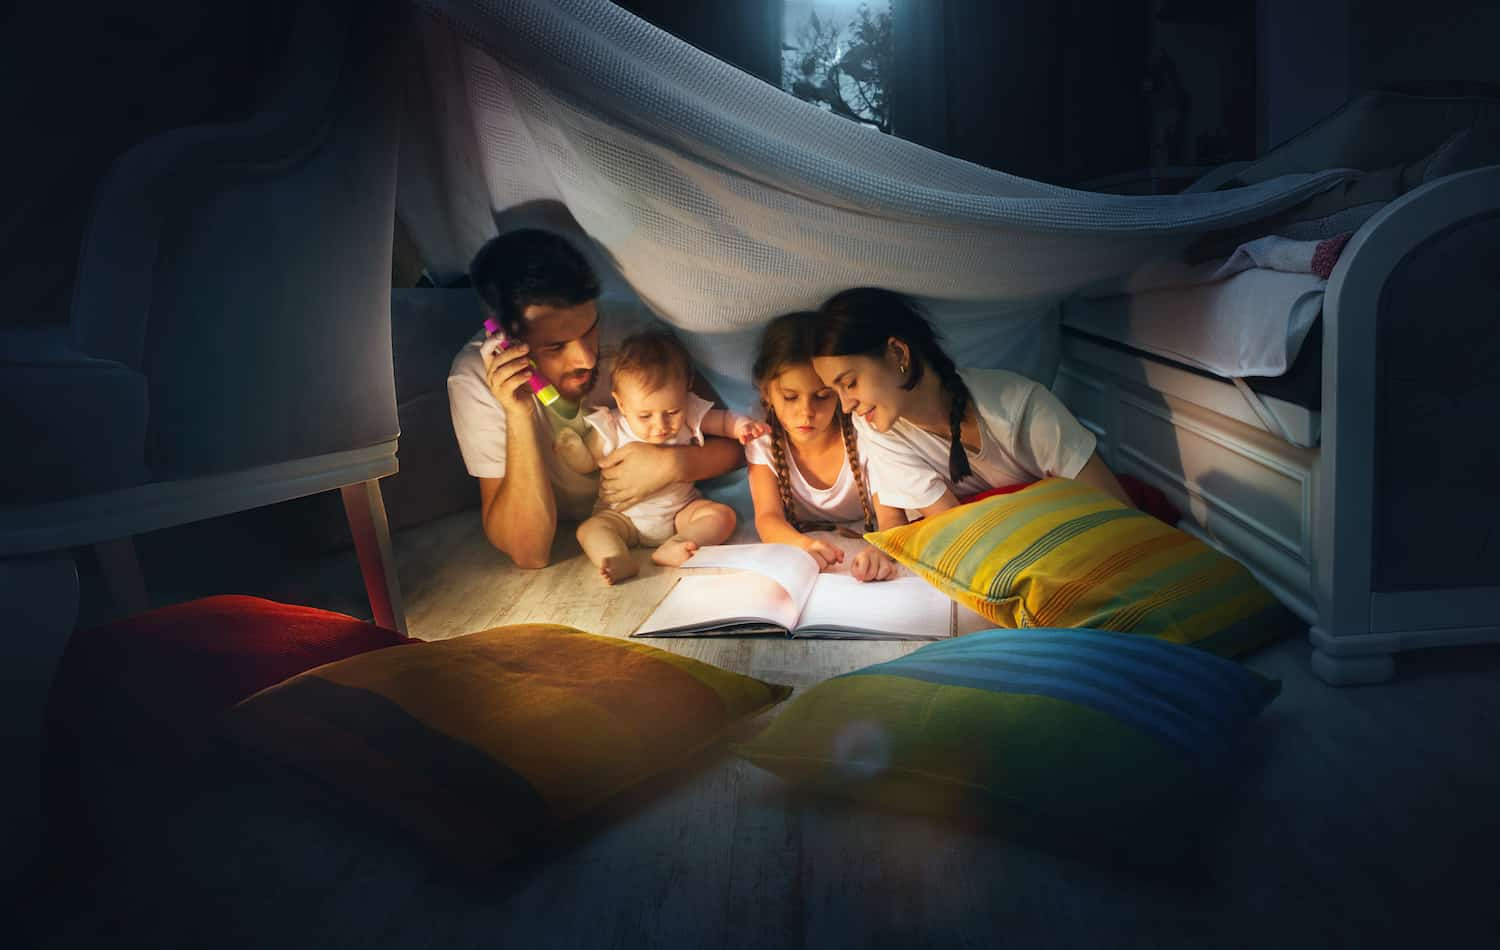 A father reads a book to his children under a play tent in an article about the Best Baby Books for the First Year